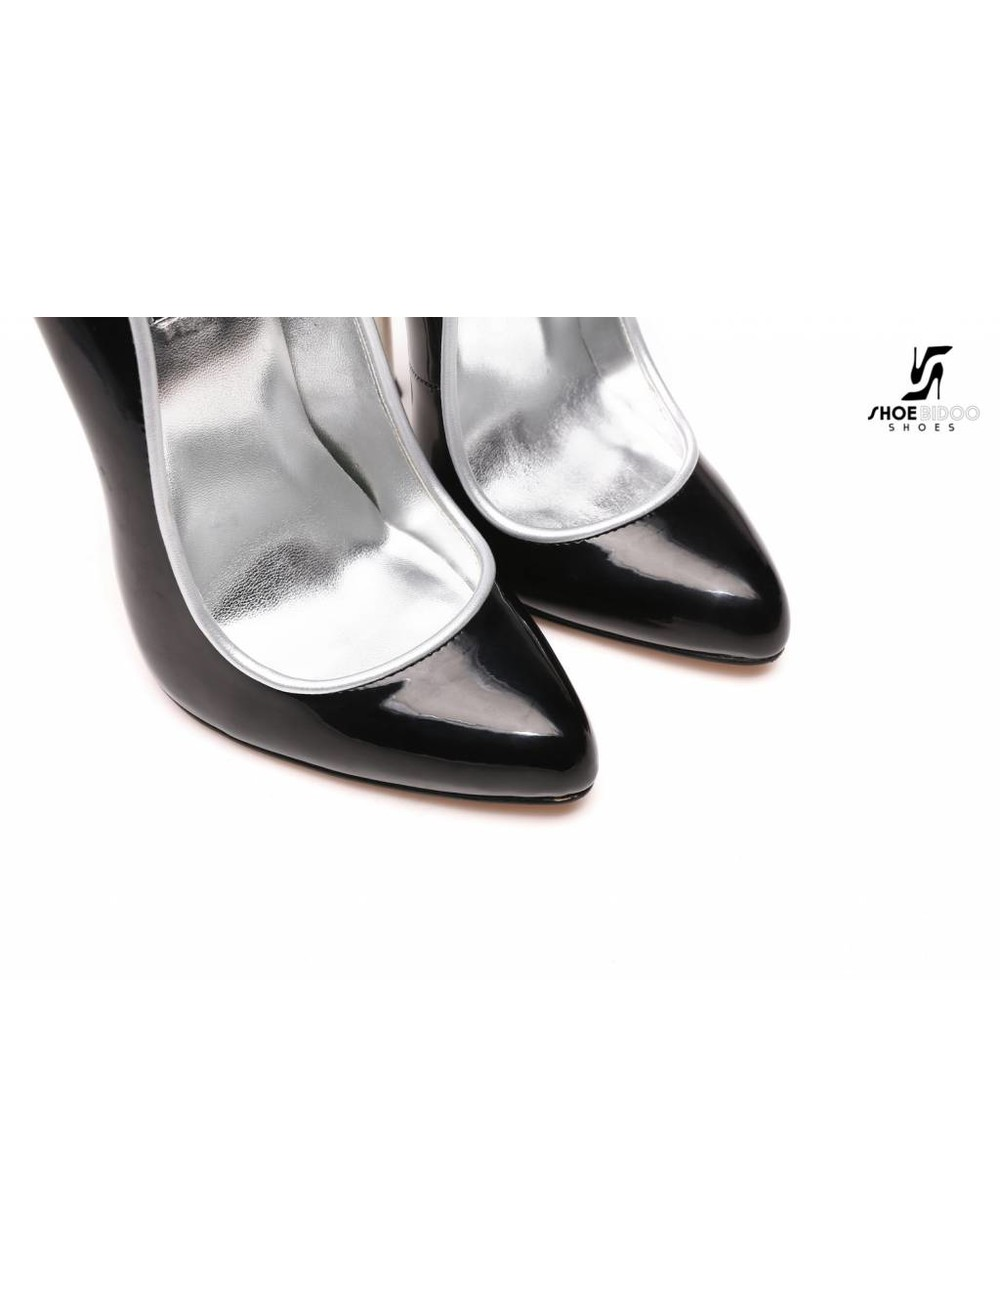 Giaro Black patent pumps with ultra high silver metal heels